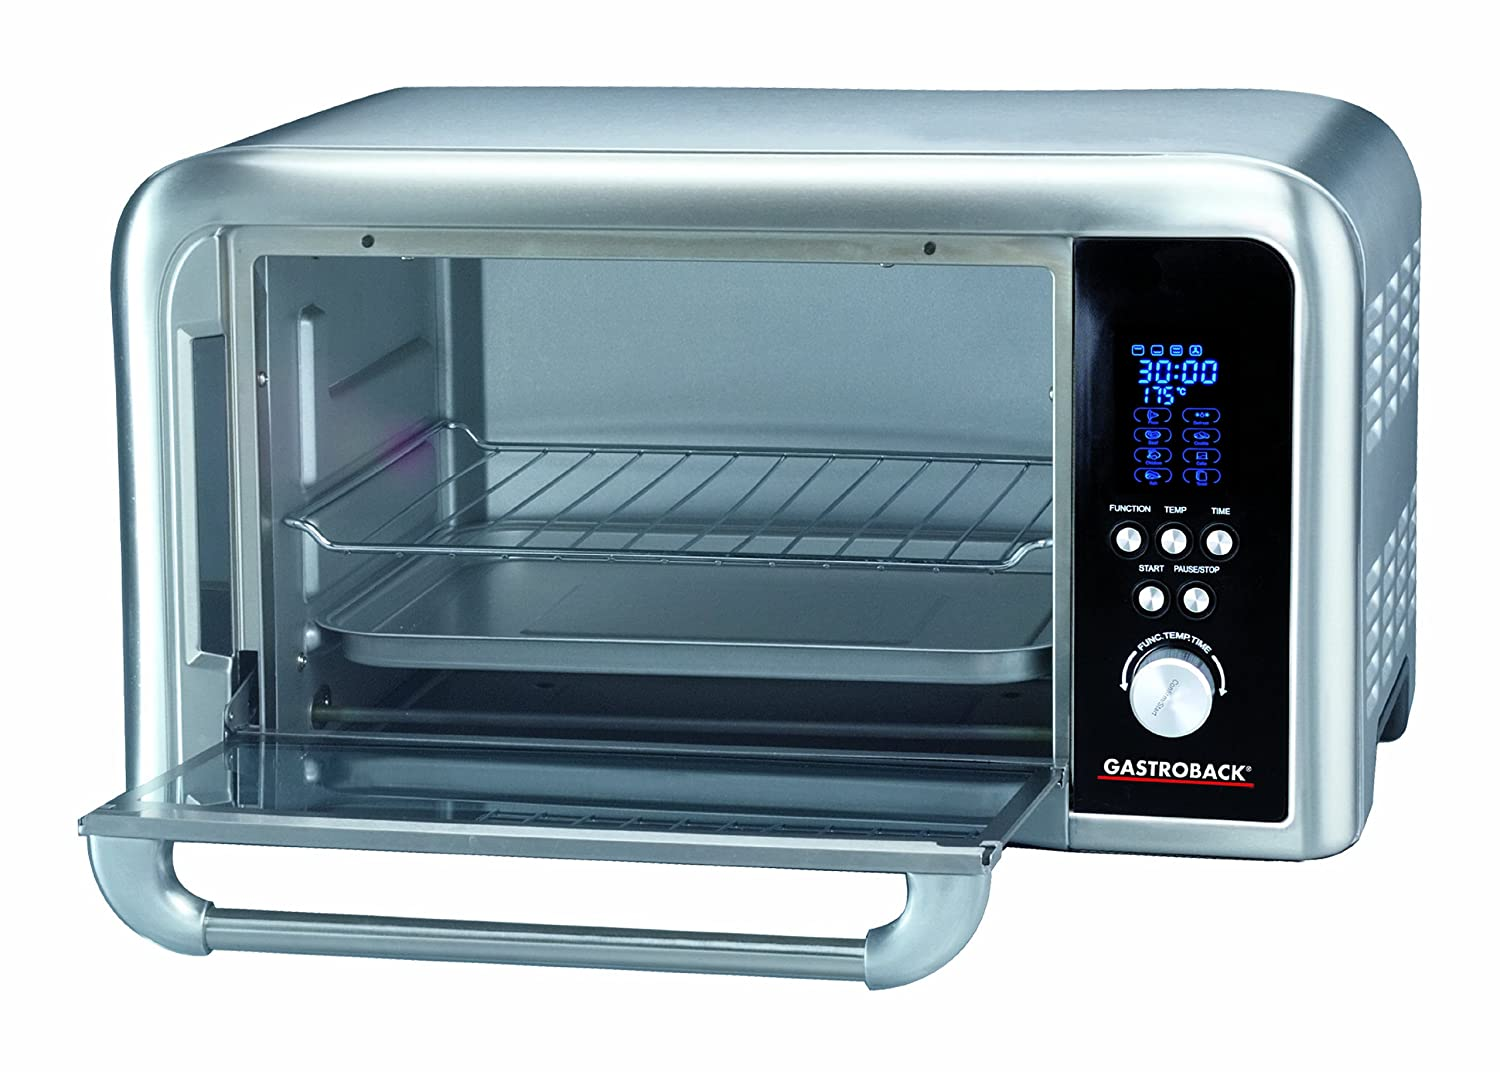 specifications of a good integrated gas oven | The Fresh Loaf